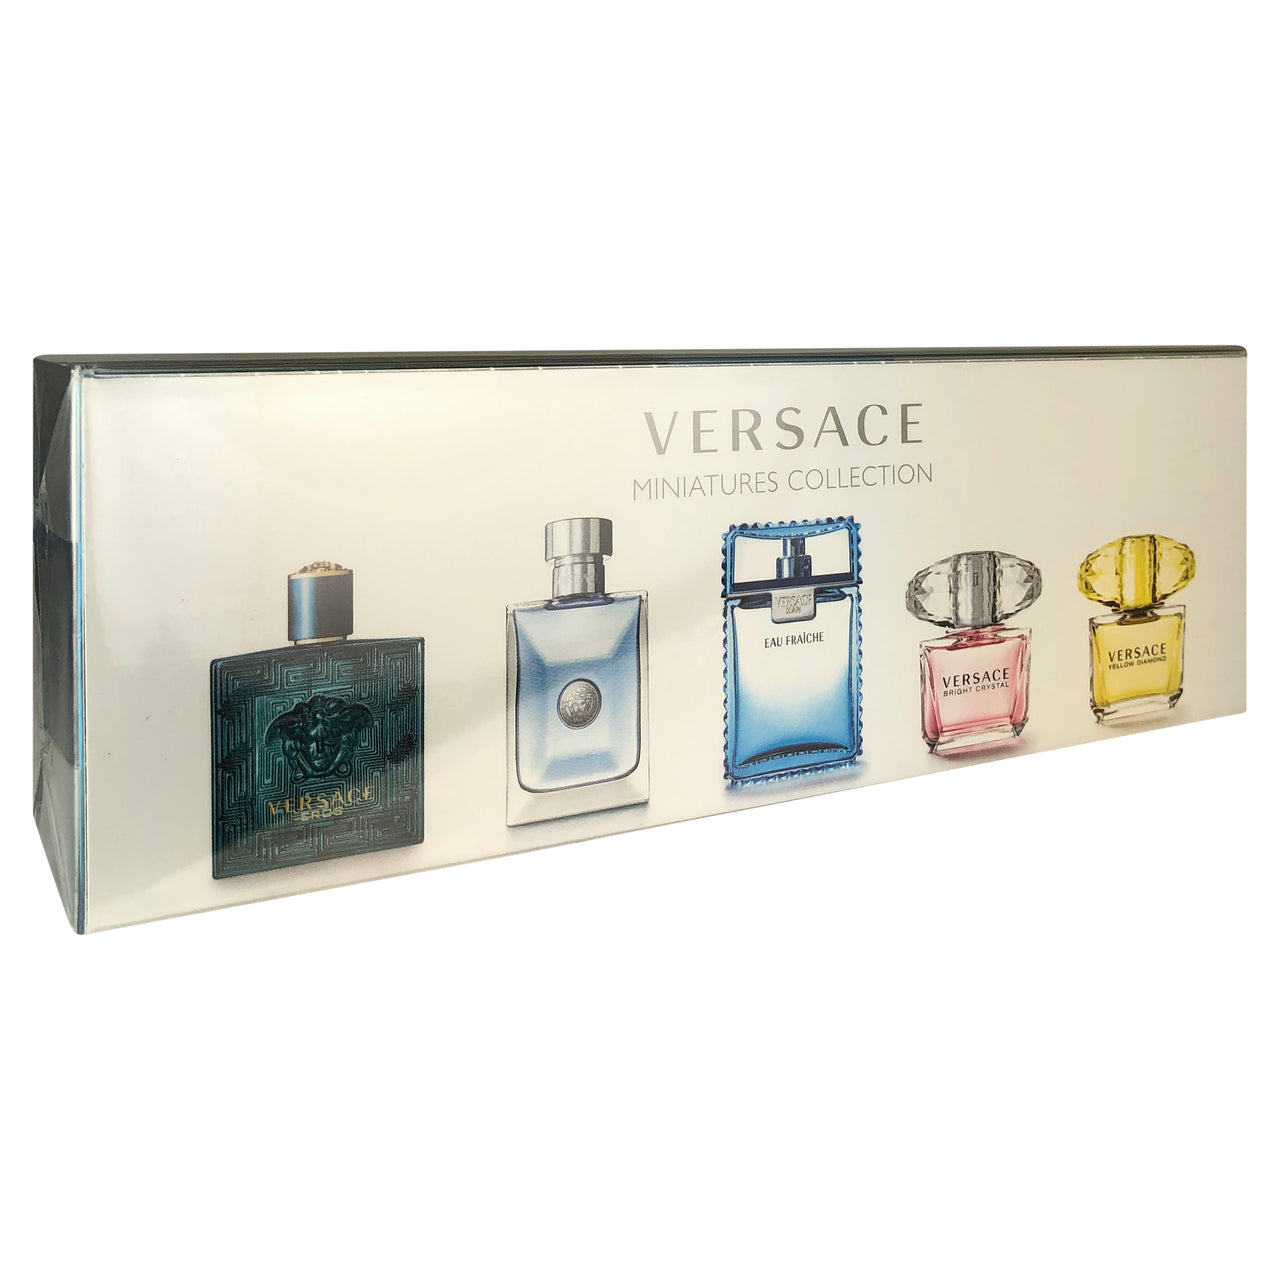 Versace 5 Pc. Miniature Collection For Men and Women Yellow Diamond Bright Crystal Man Eau Fraiche Pour Homme Eros .17 oz EDT Spray